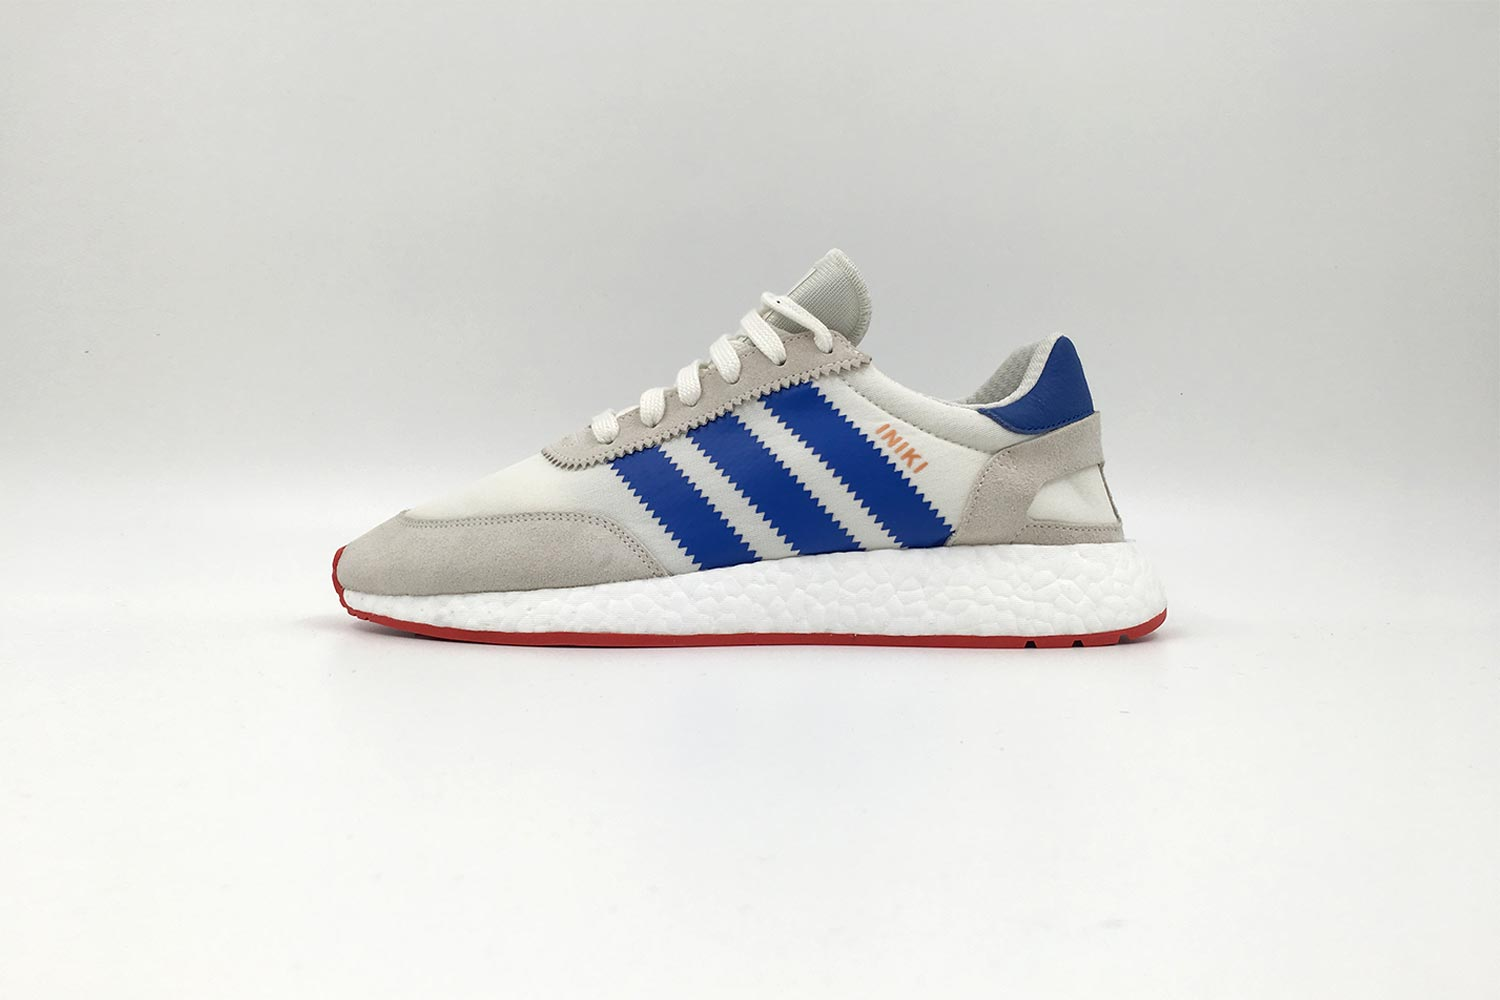 294991c2a822ac Two New adidas Iniki Runner Colorways